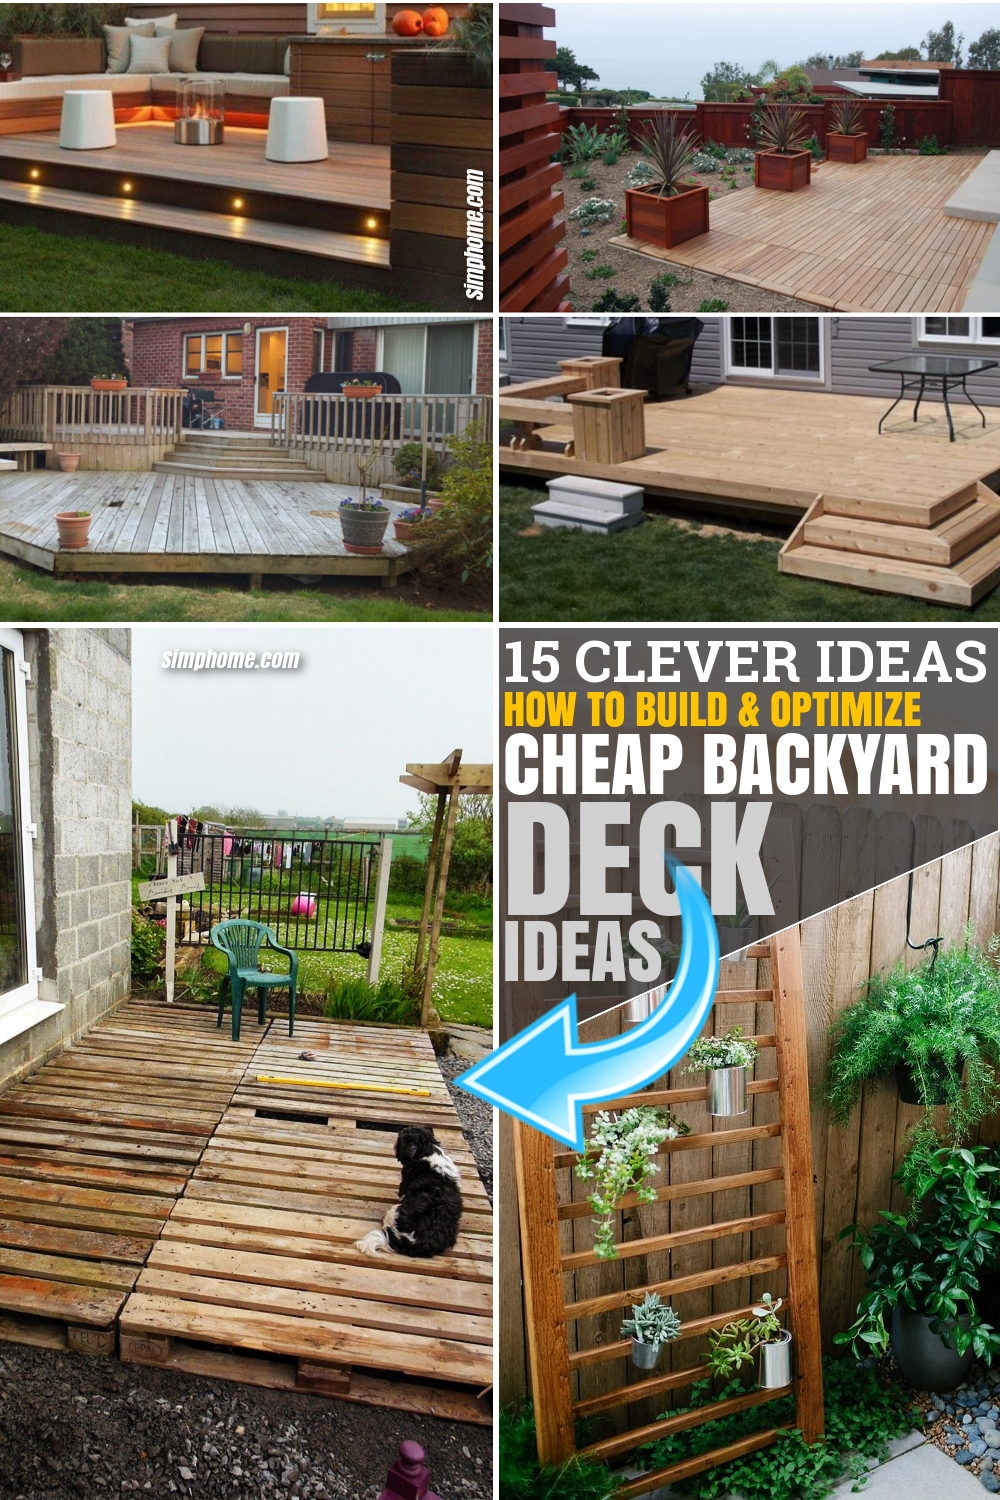 SIMPHOME.COM 10 Ideas How to Makeover Cheap Backyard Deck Ideas Pinterest Featured Image